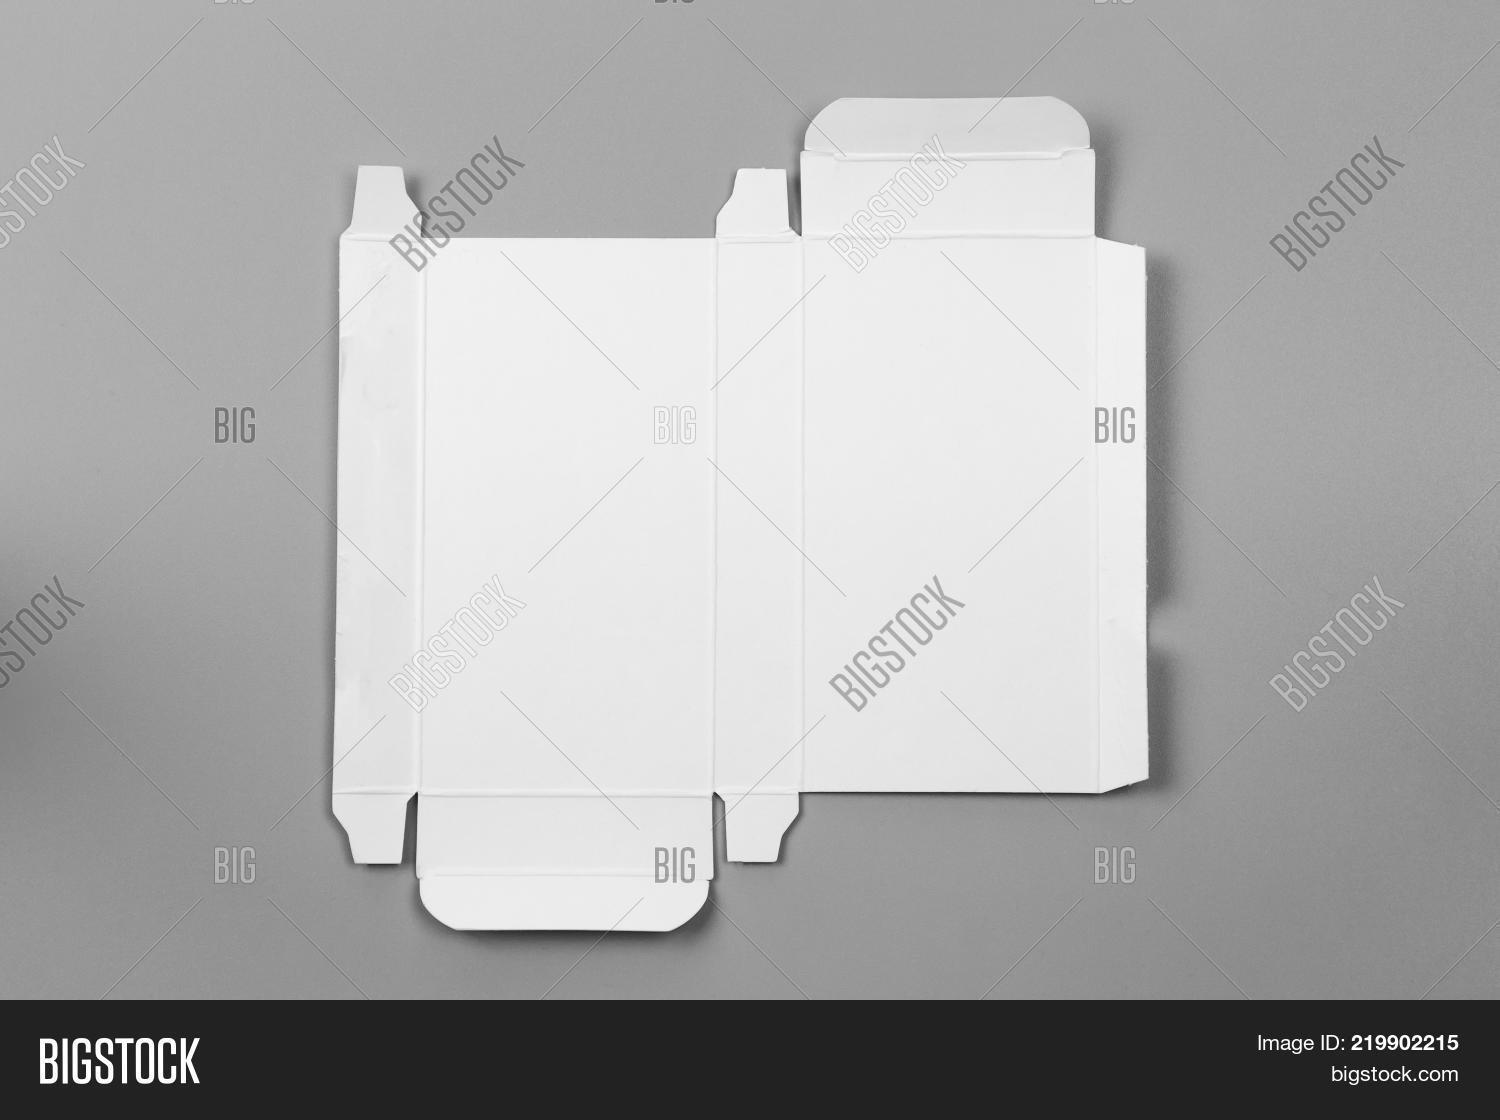 Mockup blueprint template white image photo bigstock mockup blueprint template of white paper box packaging on gray background old cardboard with die malvernweather Image collections